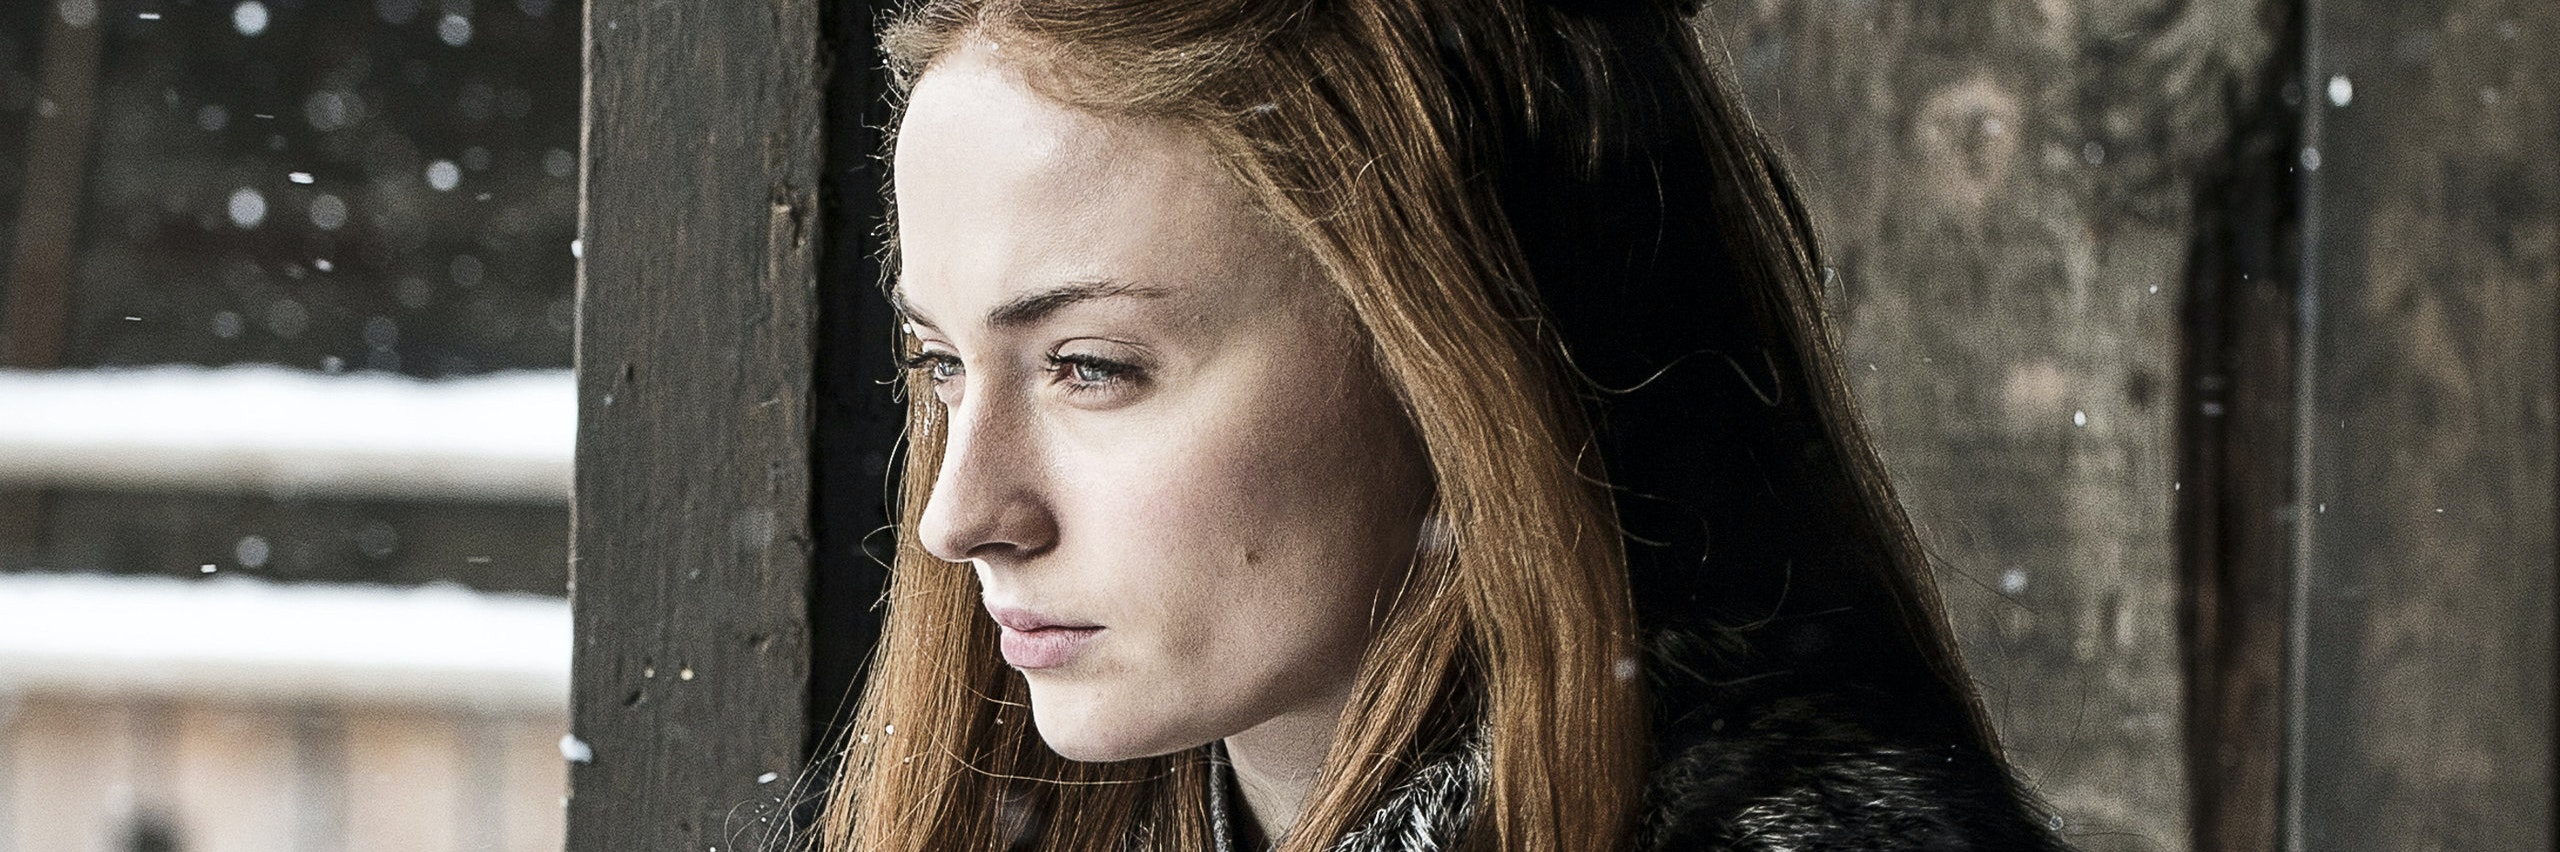 https://fsmedia.imgix.net/47/37/16/82/cf6c/4ded/b84b/bd194552b49d/sansa-stark-in-game-of-thrones.jpeg?rect=0%2C513%2C2560%2C852&auto=format%2Ccompress&w=650